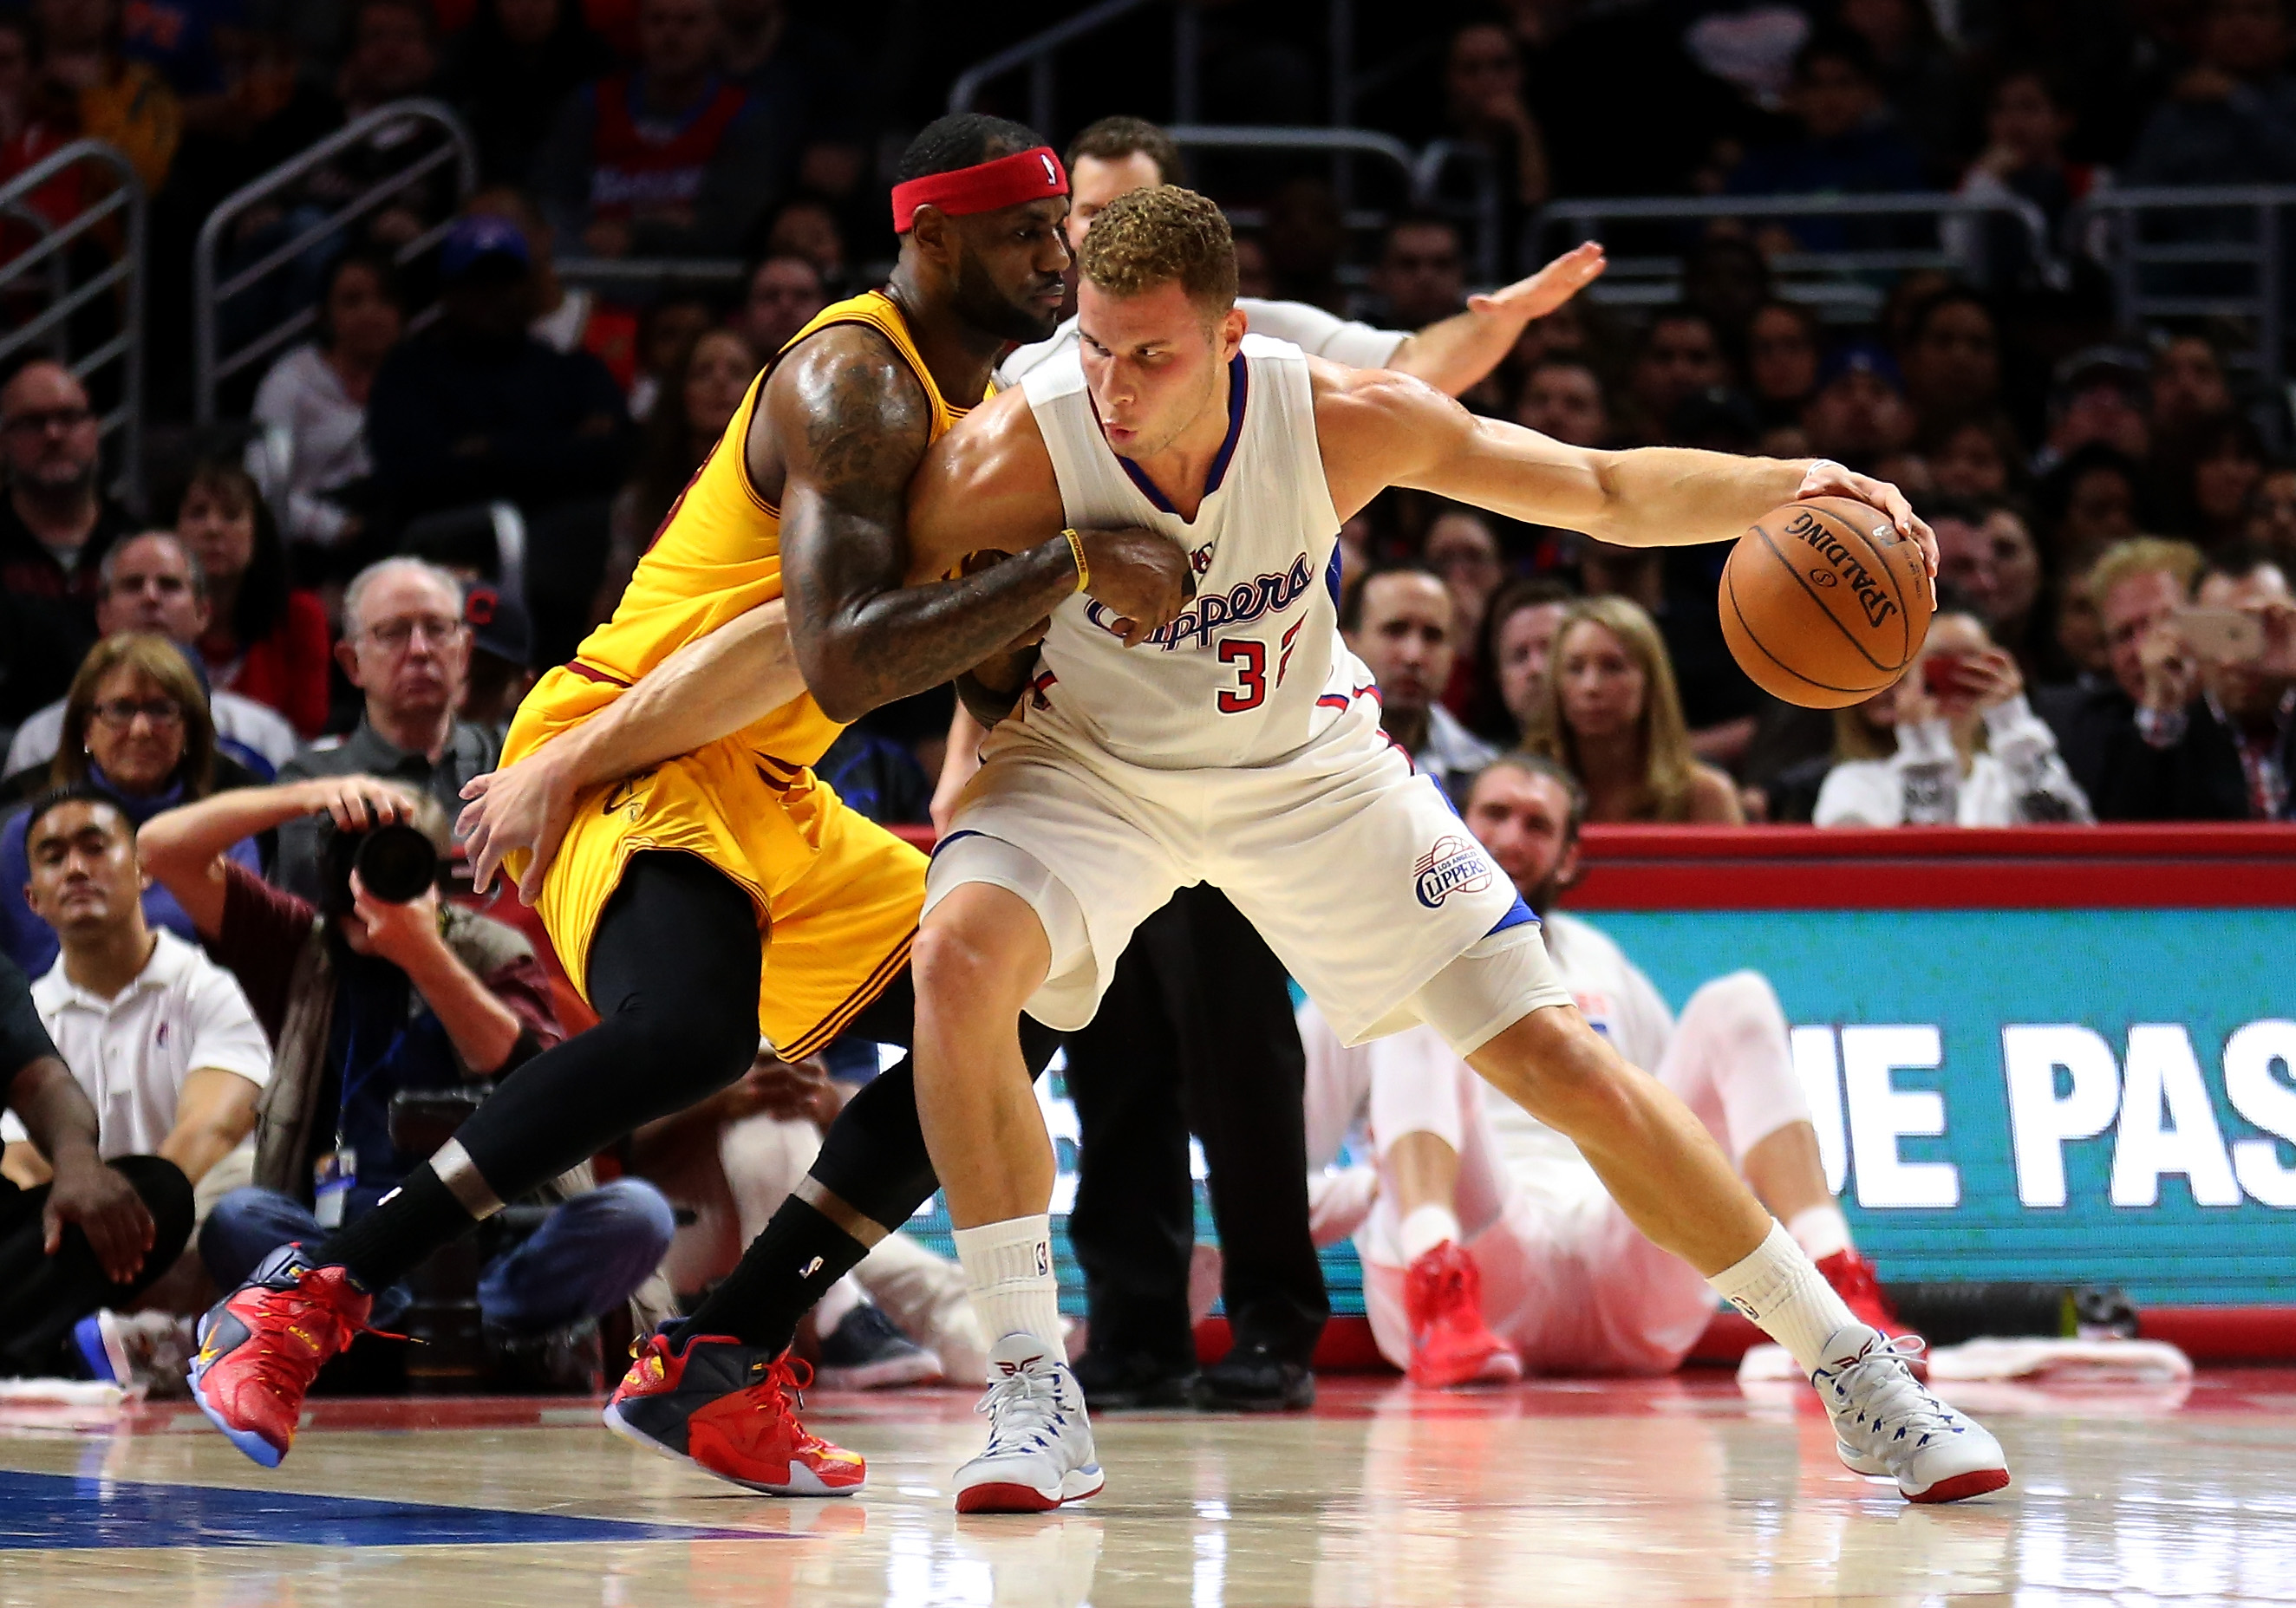 Lebron James de Cleveland Cavaliers contra Blake Griffin de Los Angeles Clippers